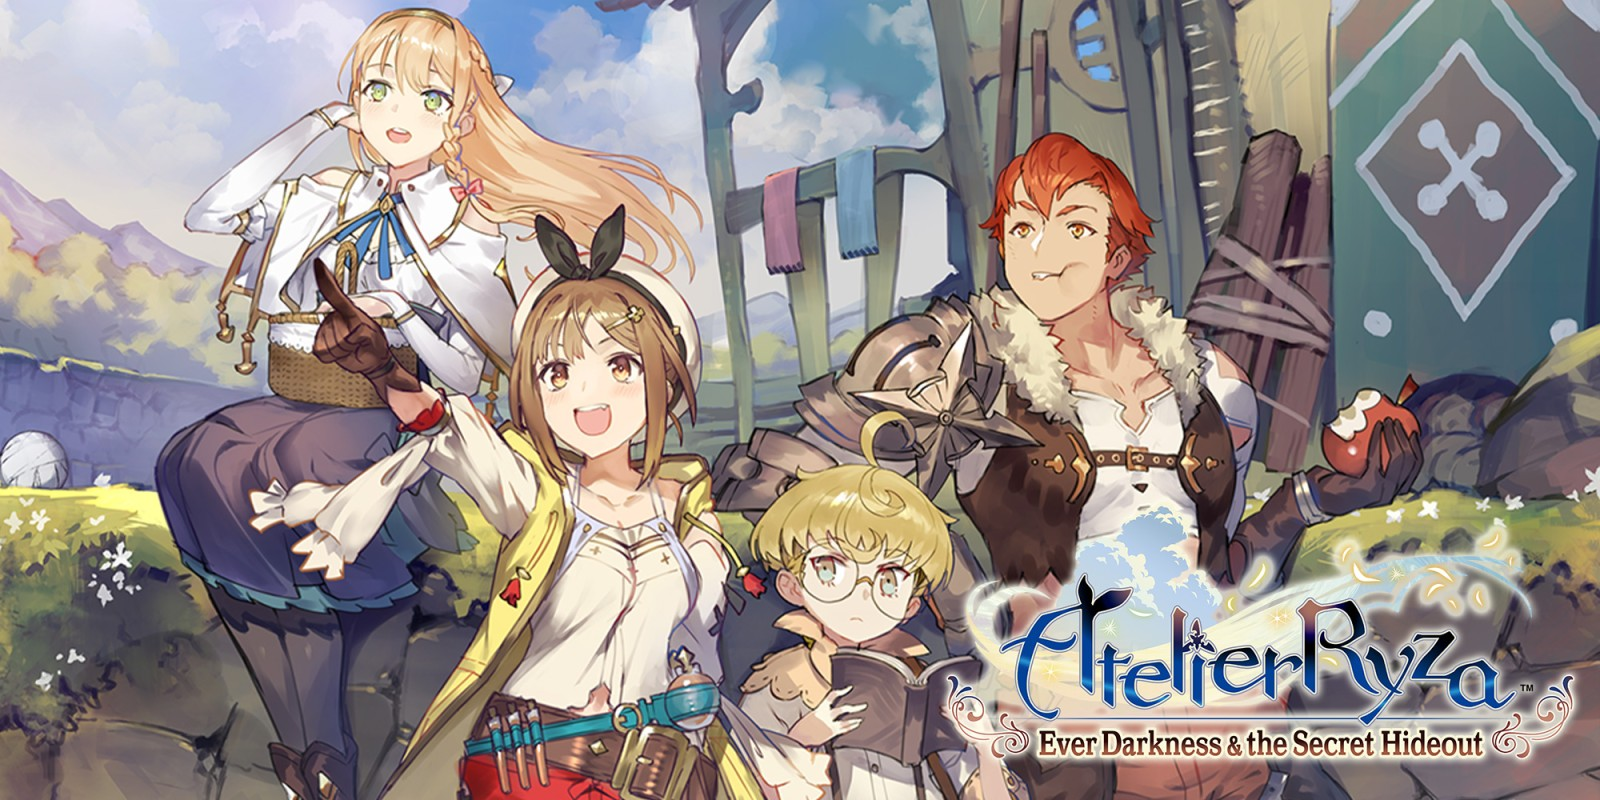 Atelier Ryza: Ever Darkness & the Secret Hideout [Switch Review]